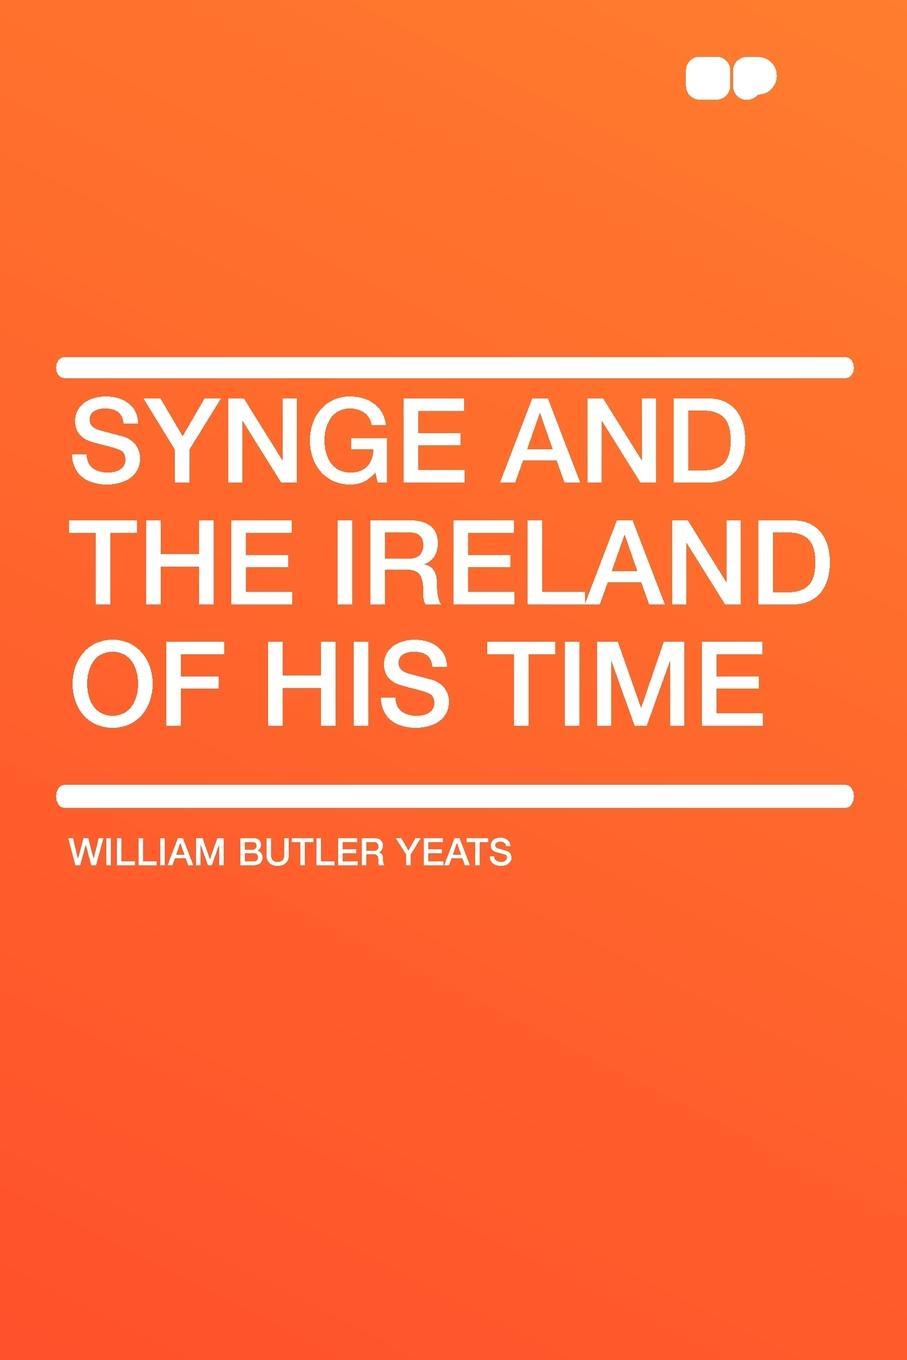 William Butler Yeats Synge and the Ireland of His Time